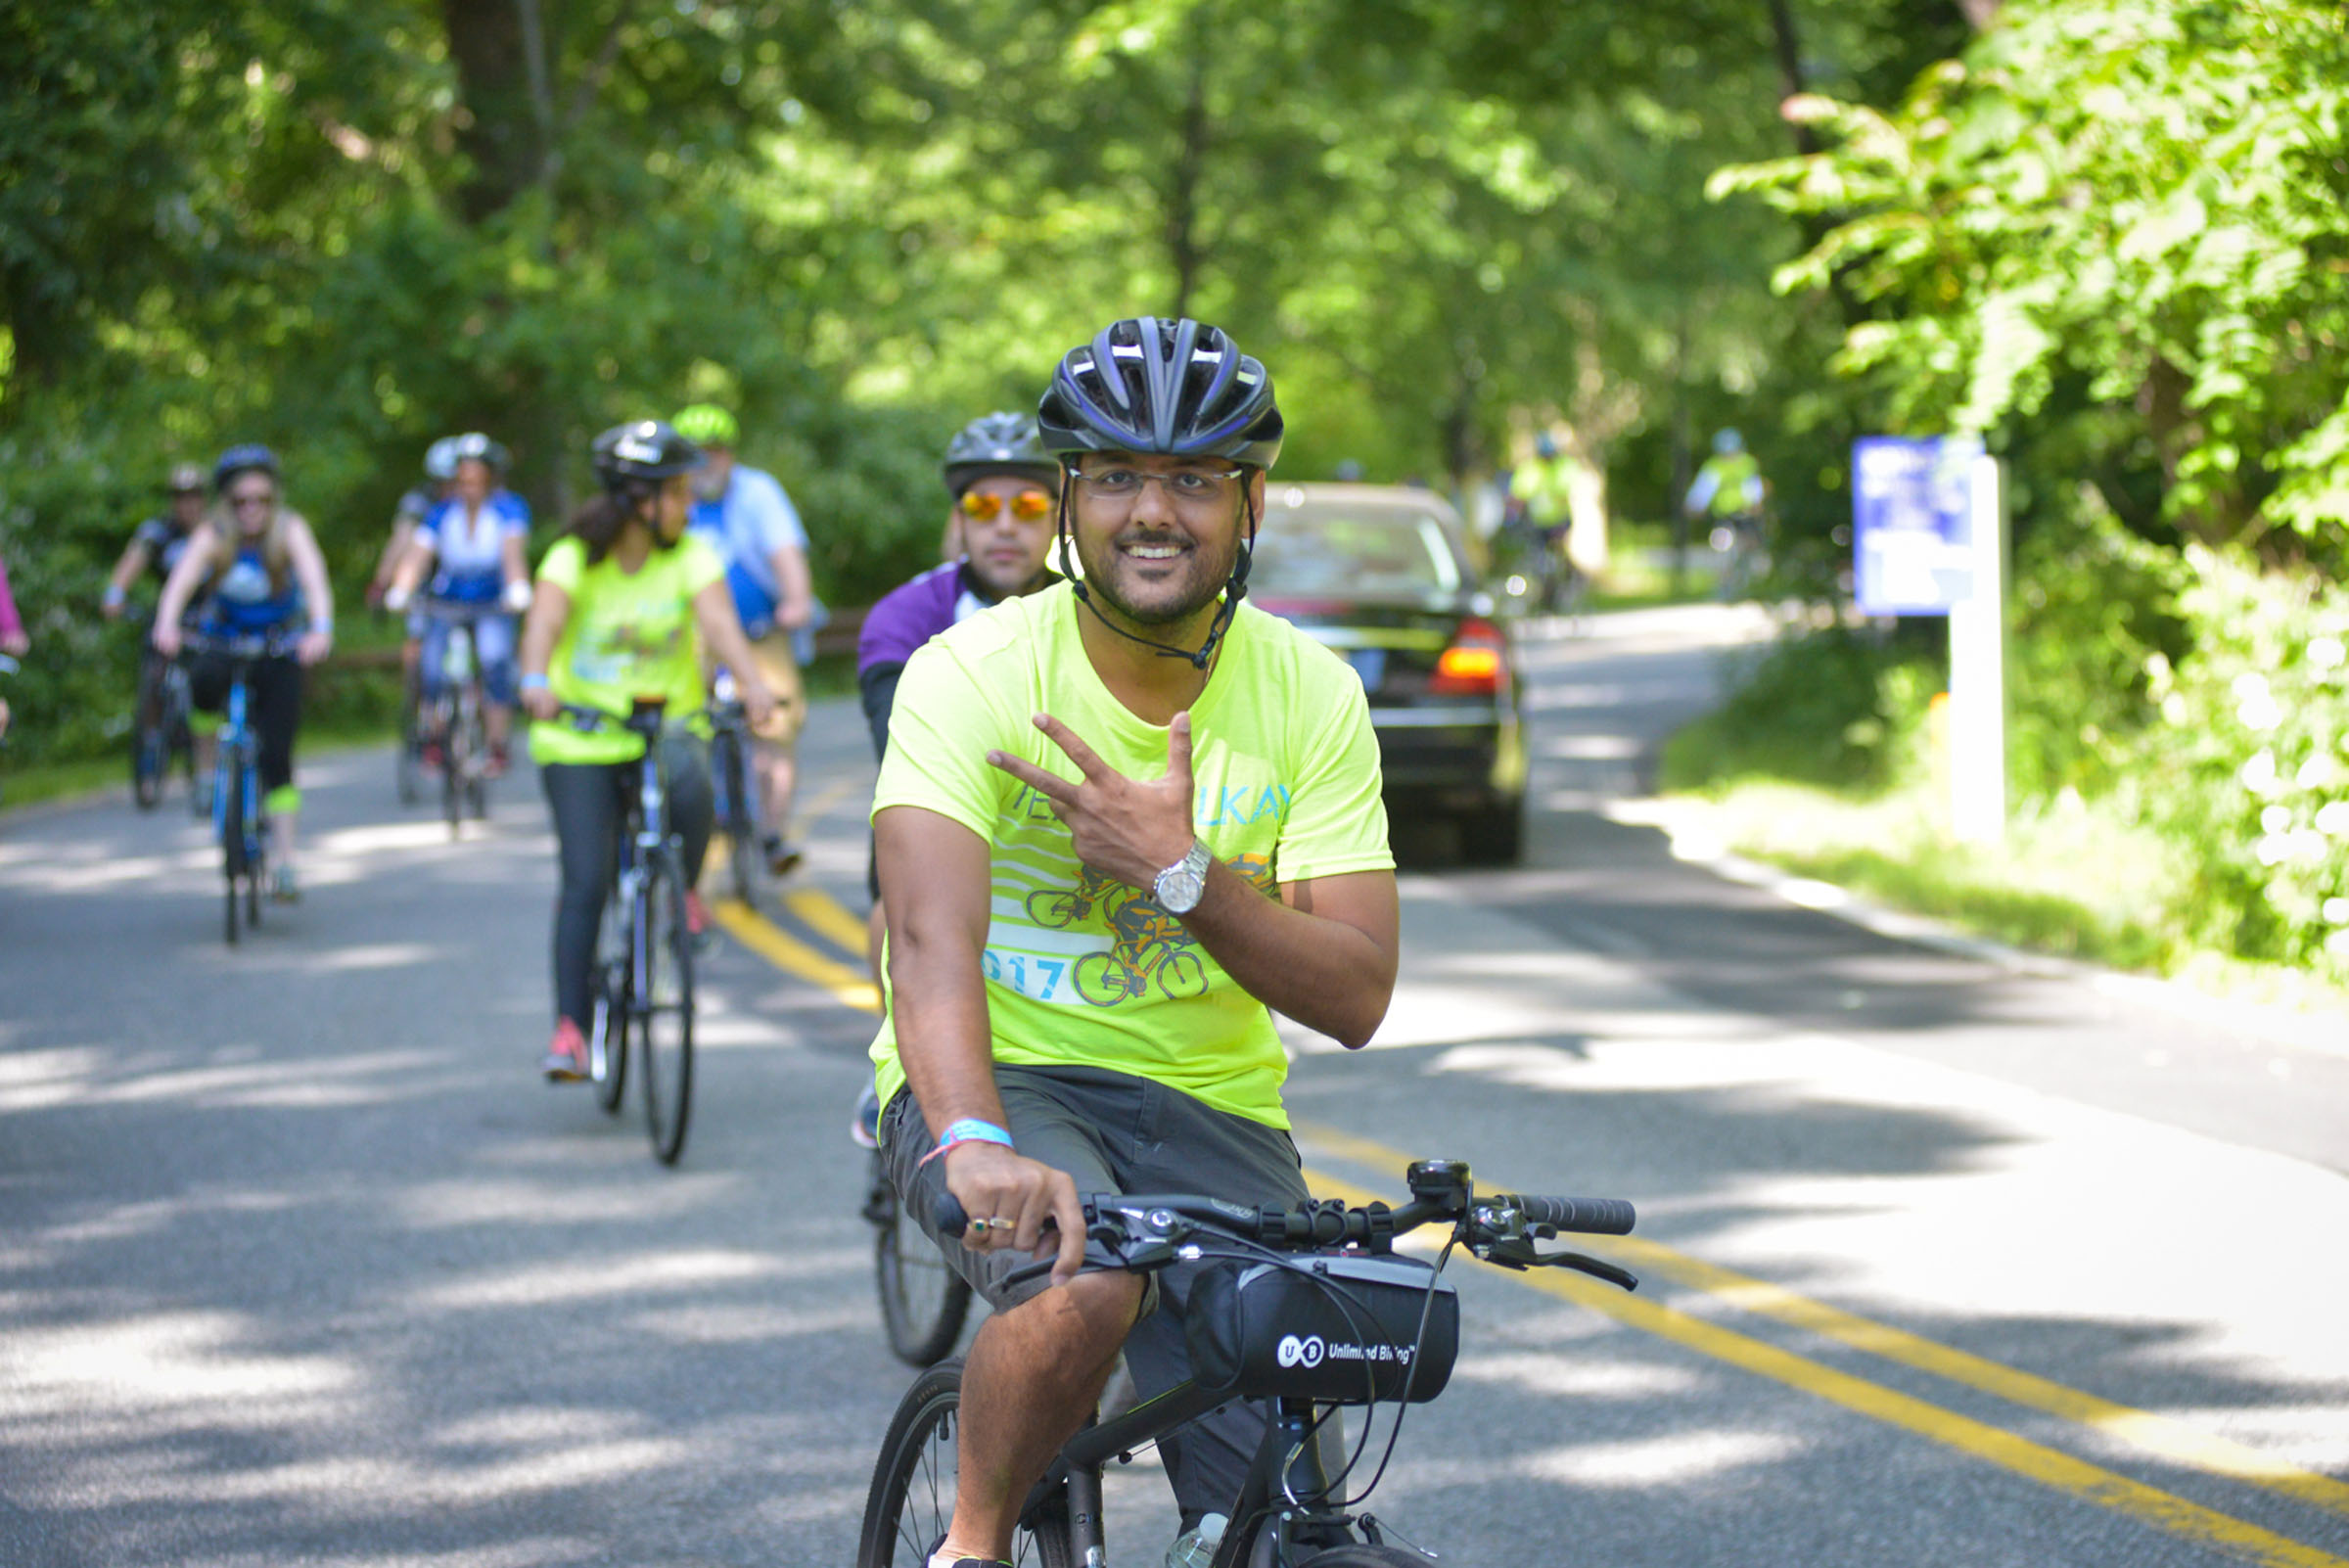 2017-06-04 GTD4A Charity Bike Ride - BCC - Paramus NJ-1942.jpg